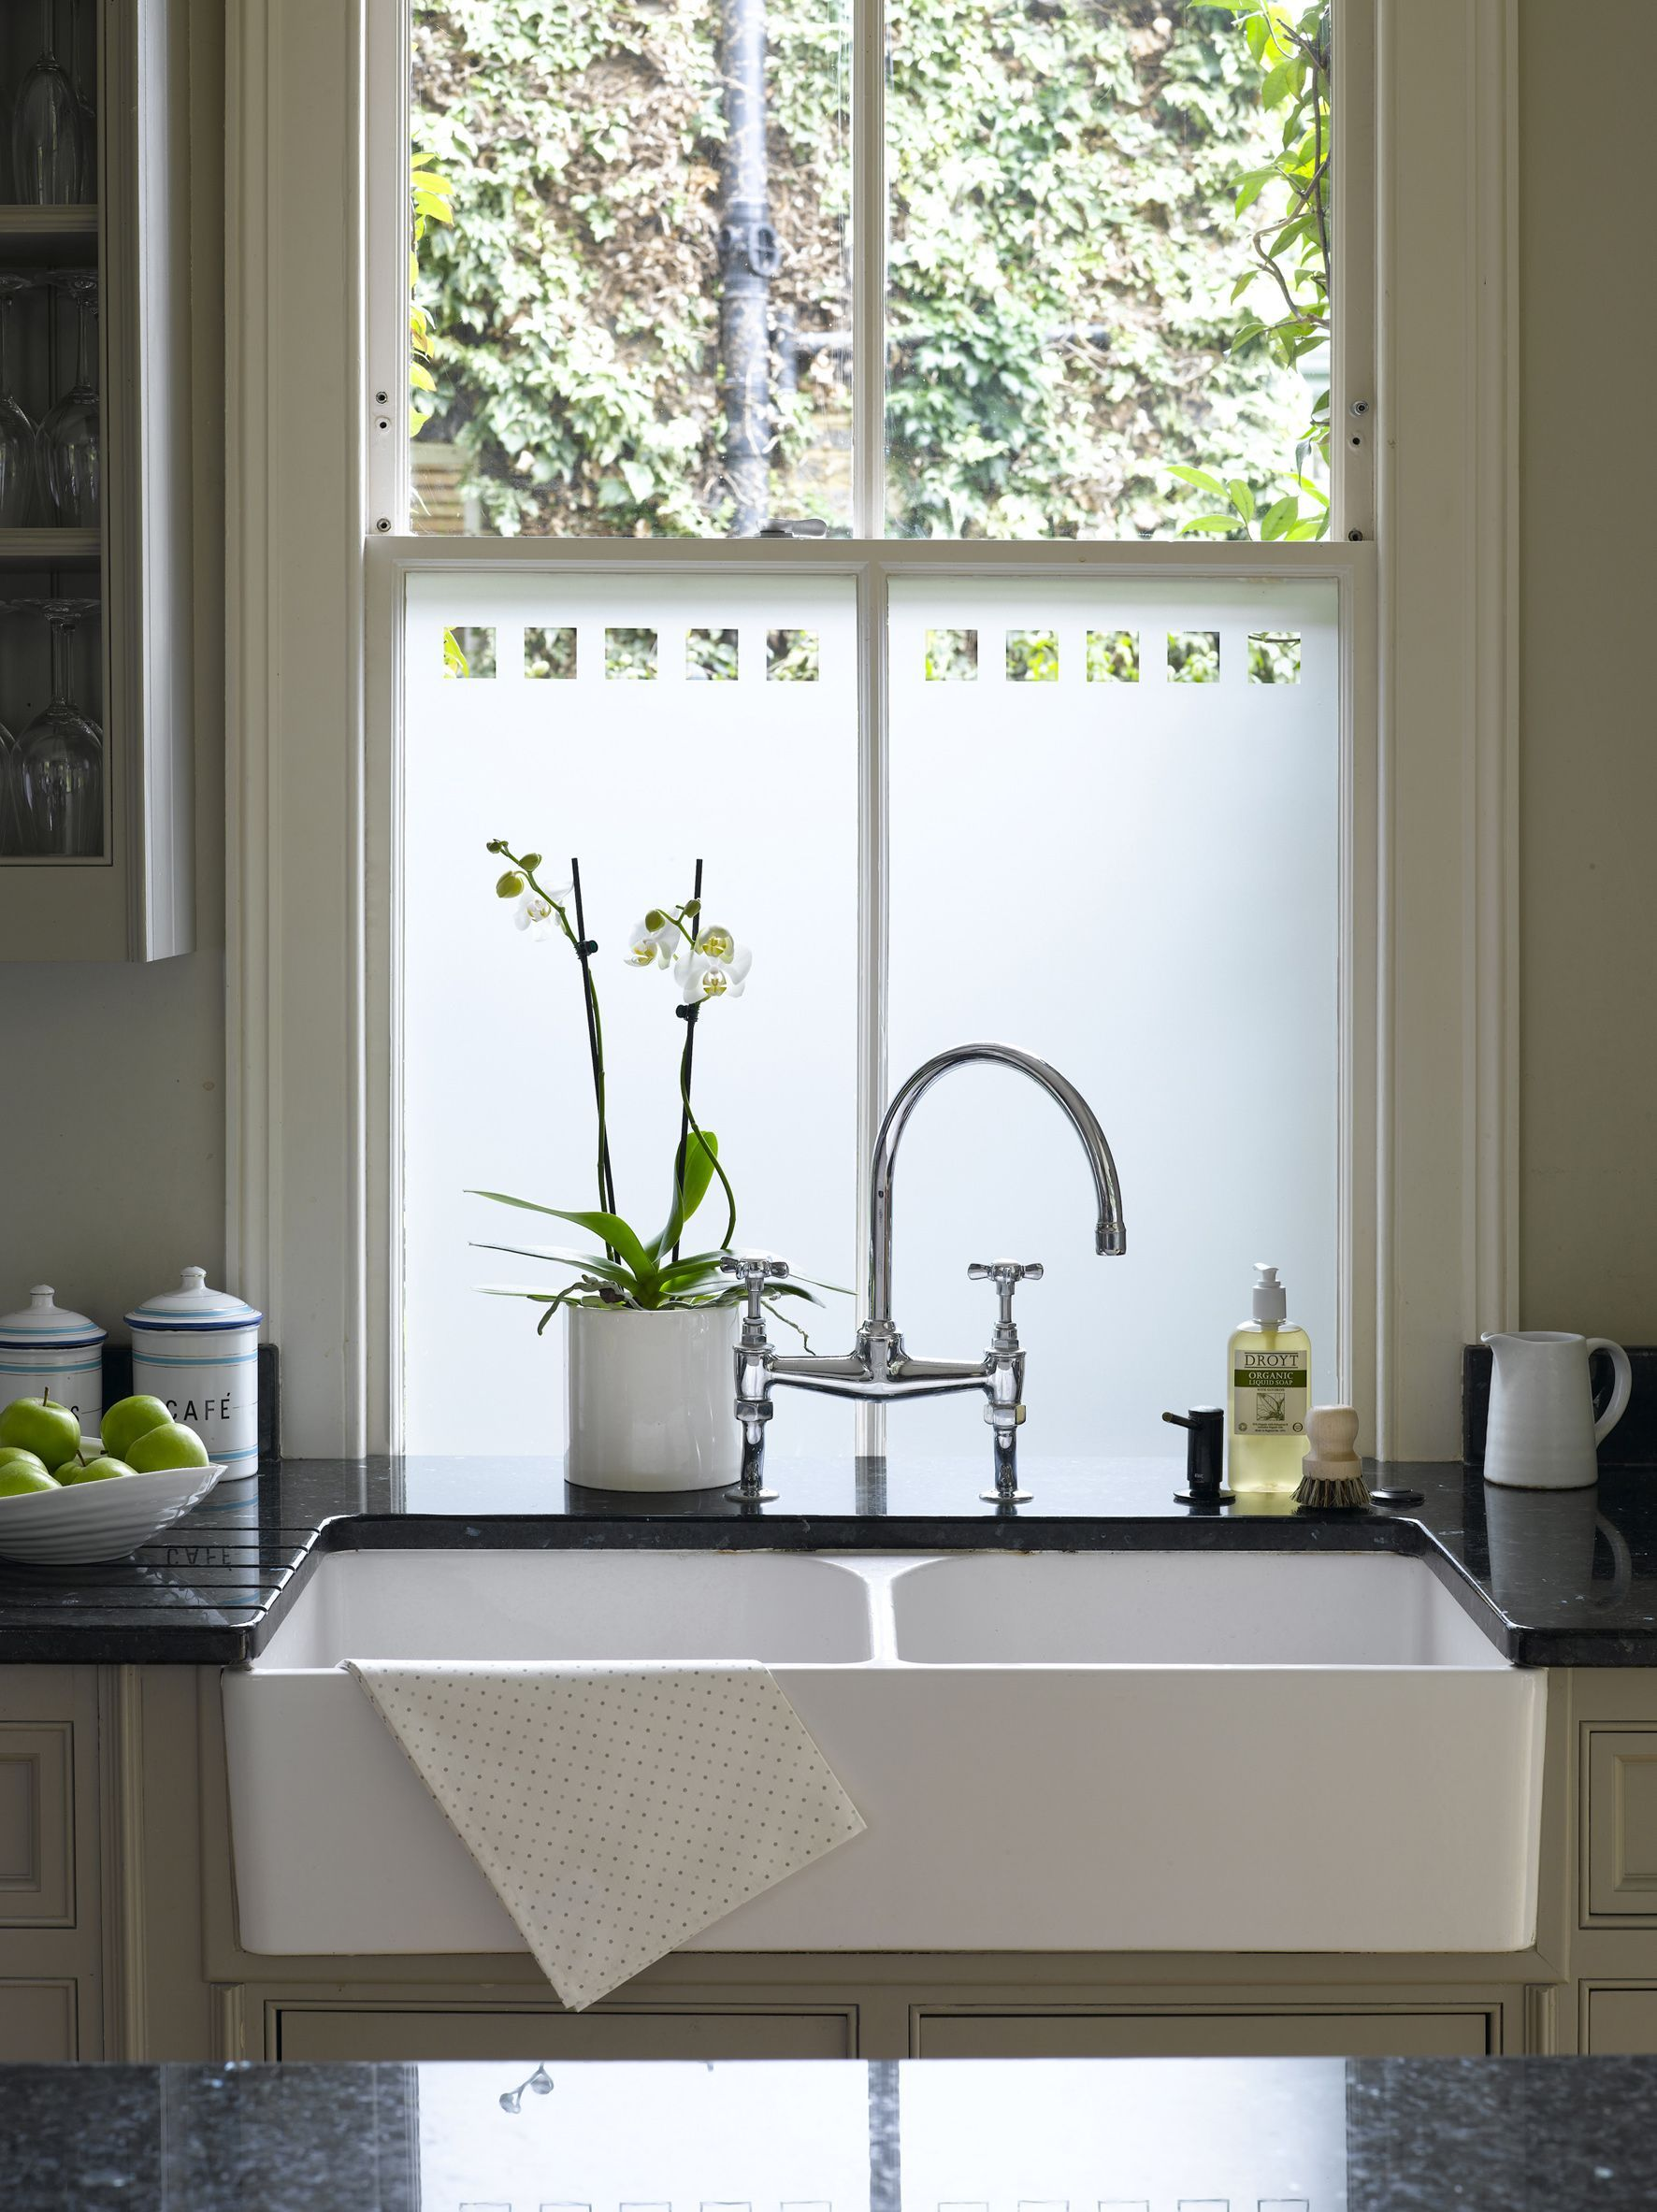 Image Result For Planter Counter In Front Of Low Window Kitchen